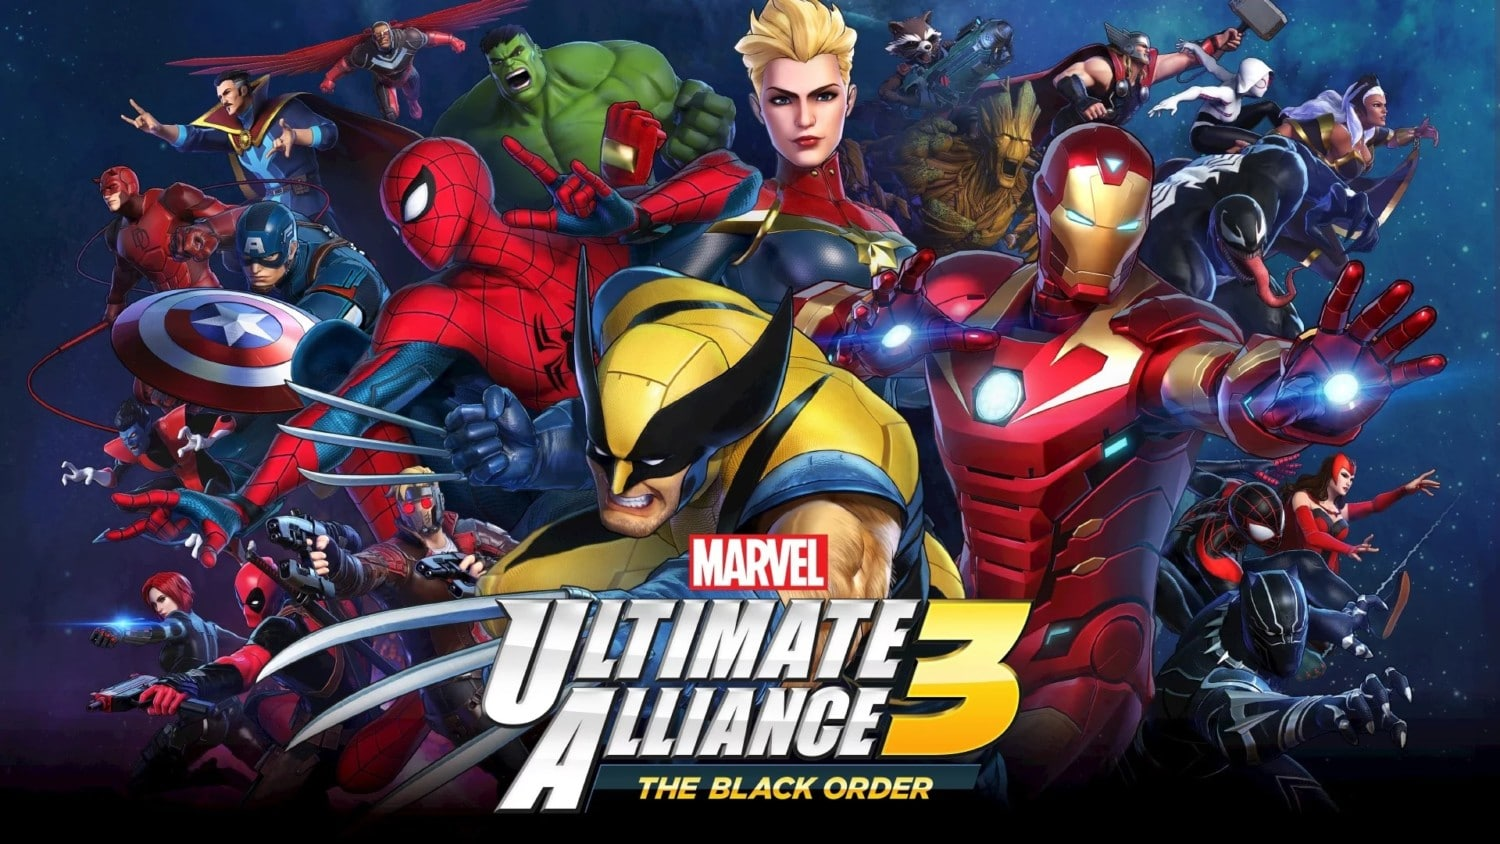 Dataminer hint naar toekomstige updates Marvel Ultimate Alliance 3